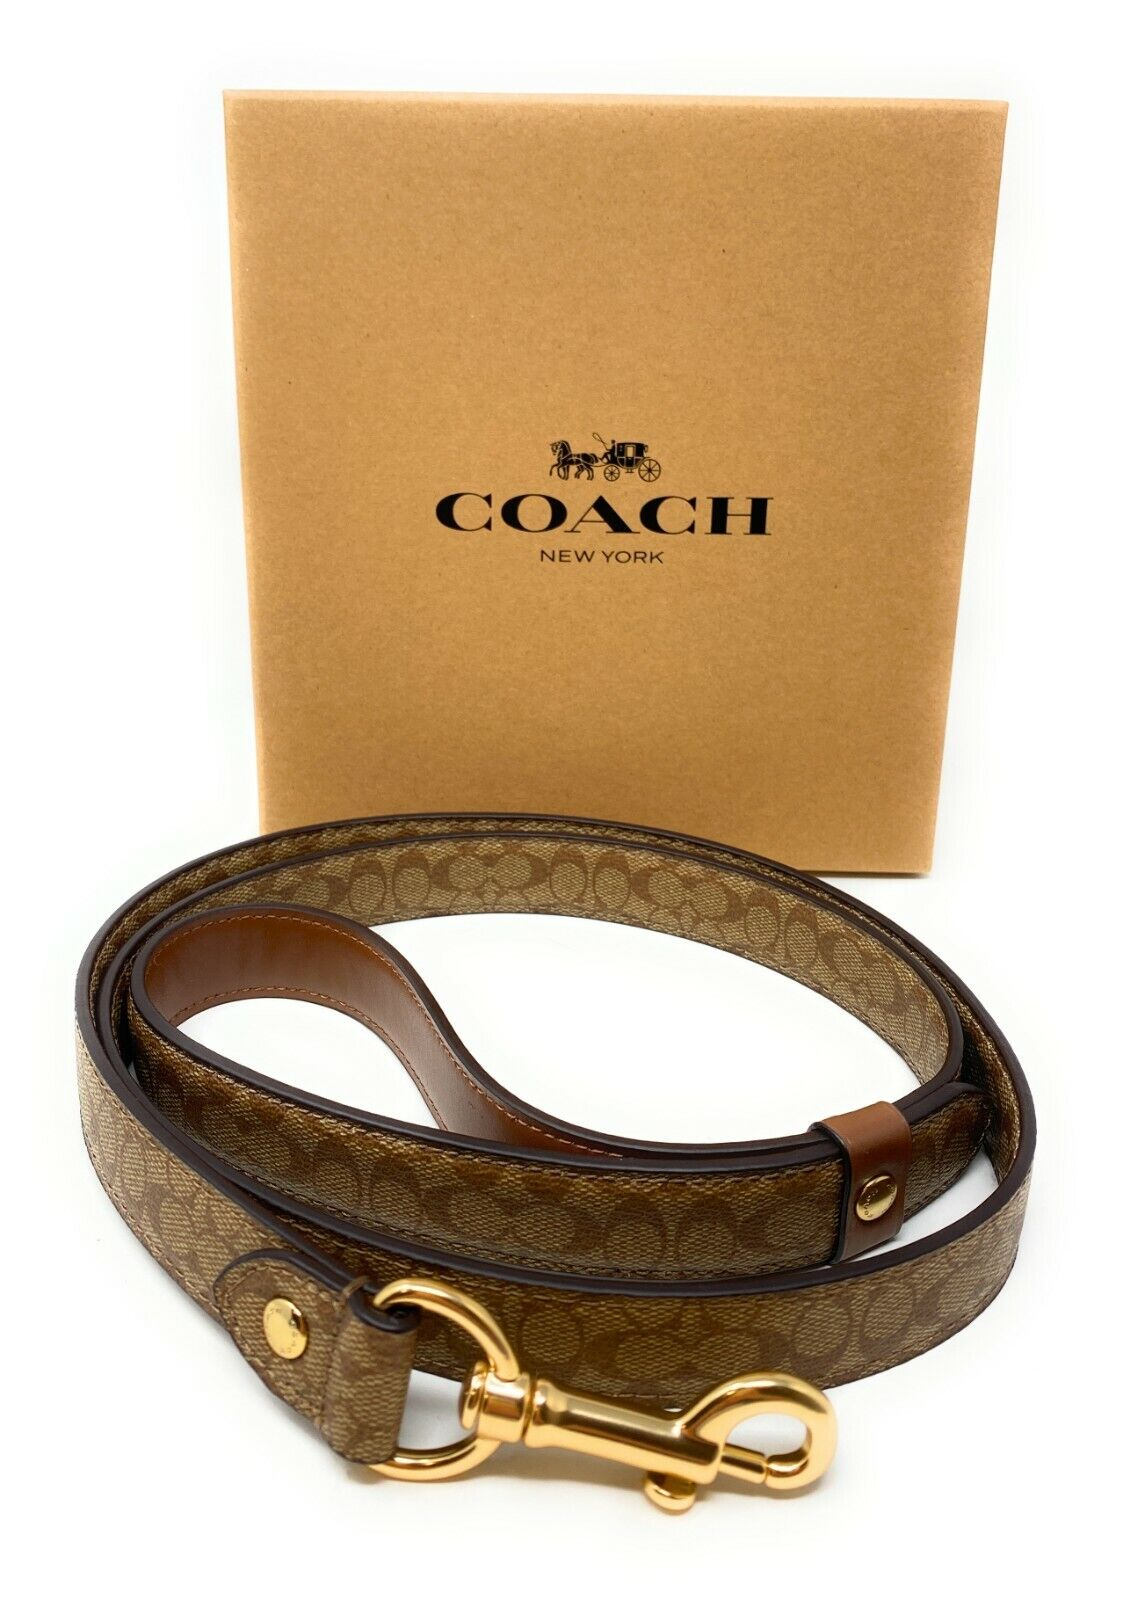 Coach  Large Leather Pet Dog Leather Leash Crossgrain Dog Supplies